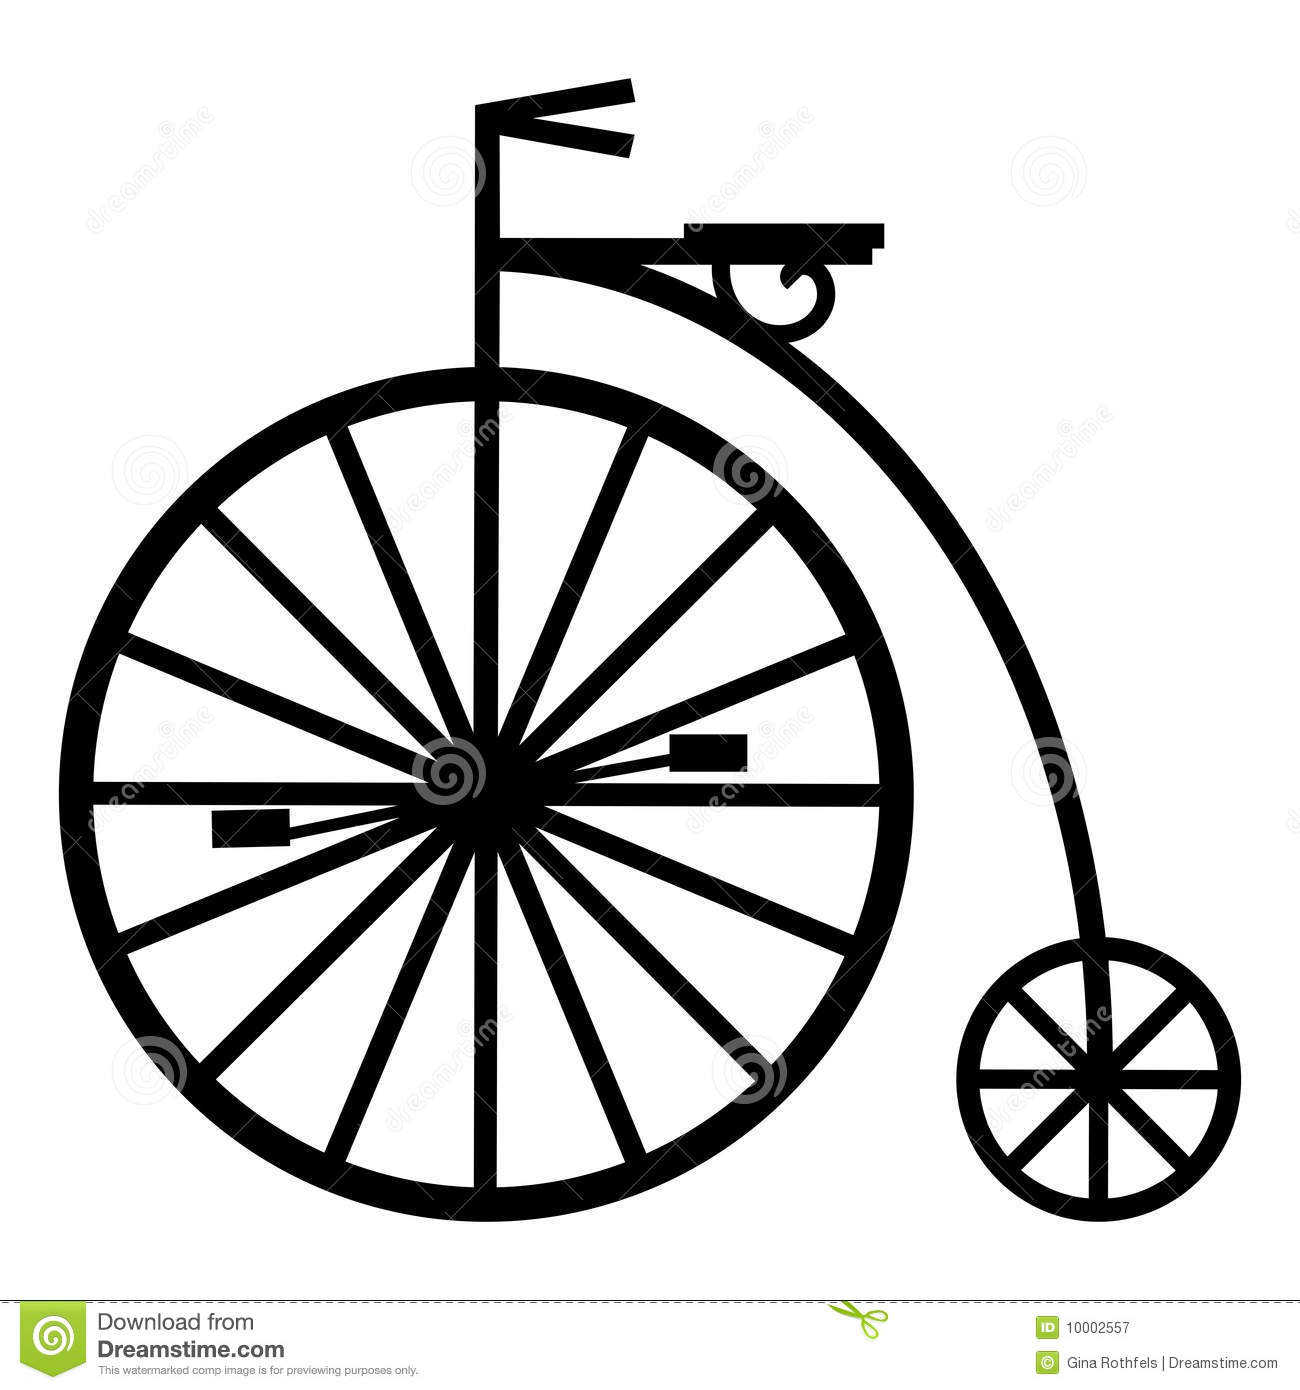 Pennyfarthing Royalty Free Stock Photography